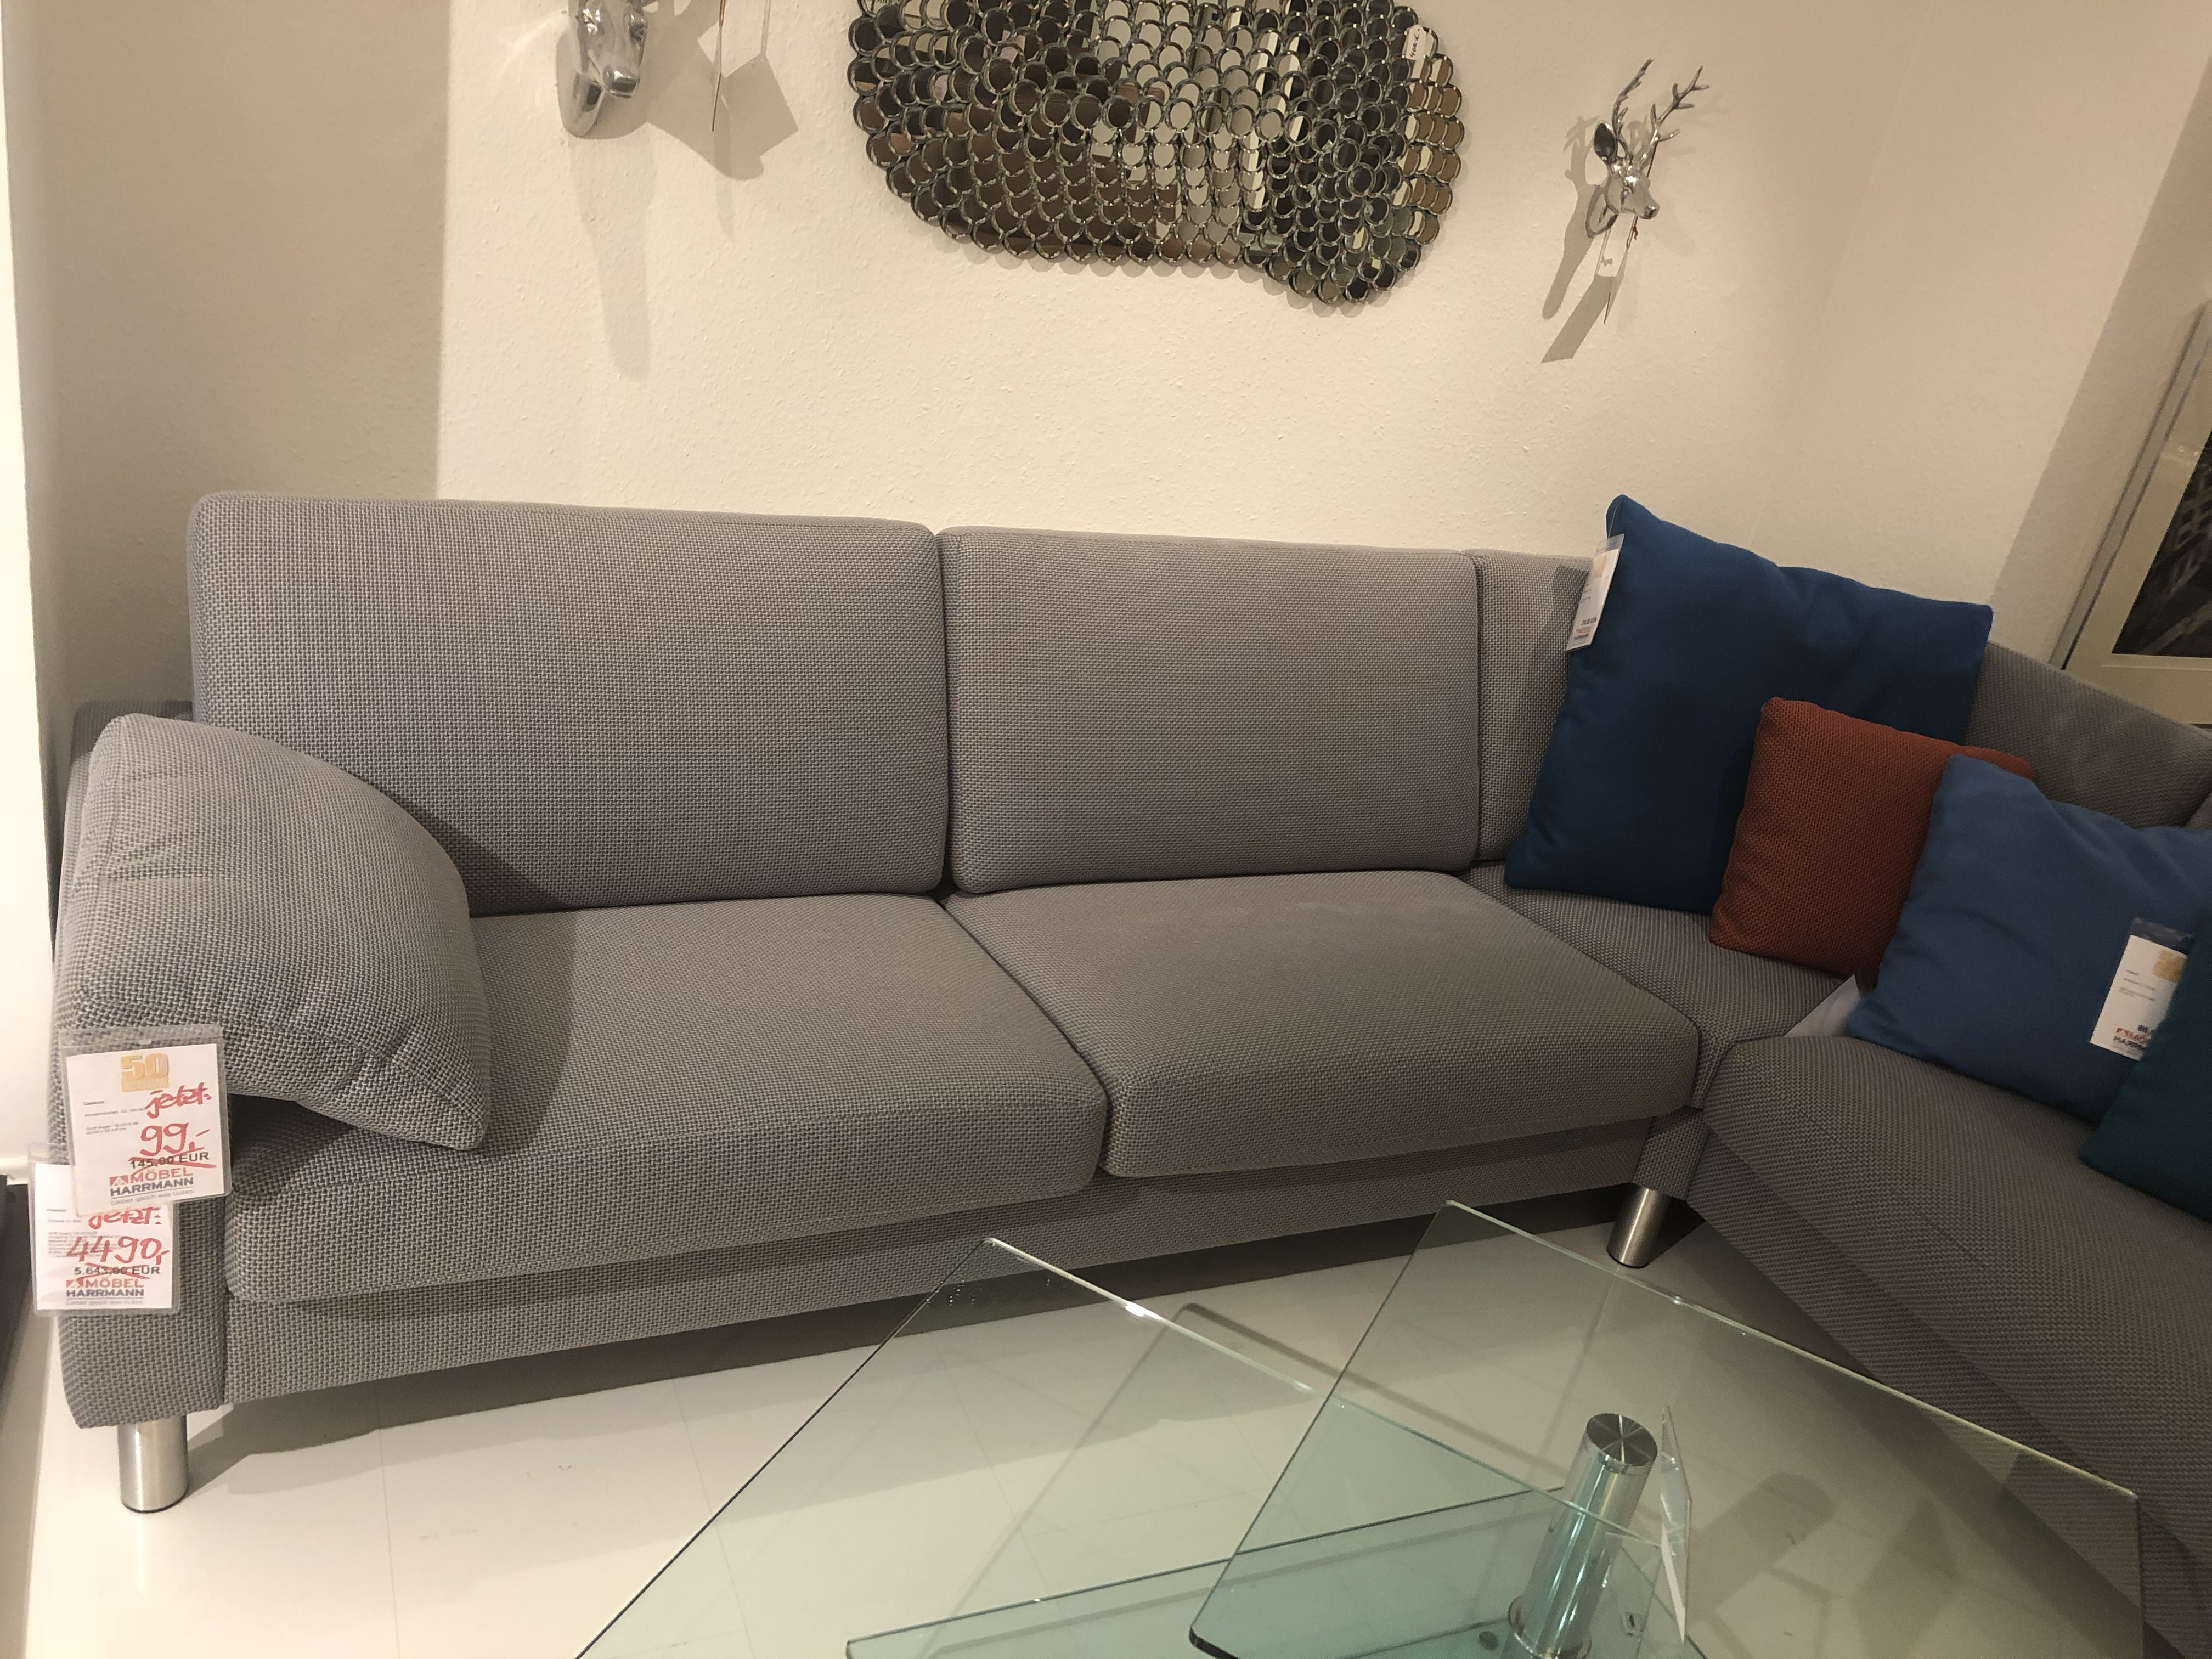 Möbel Hübner Couchgarnituren Erpo Sofa Classic